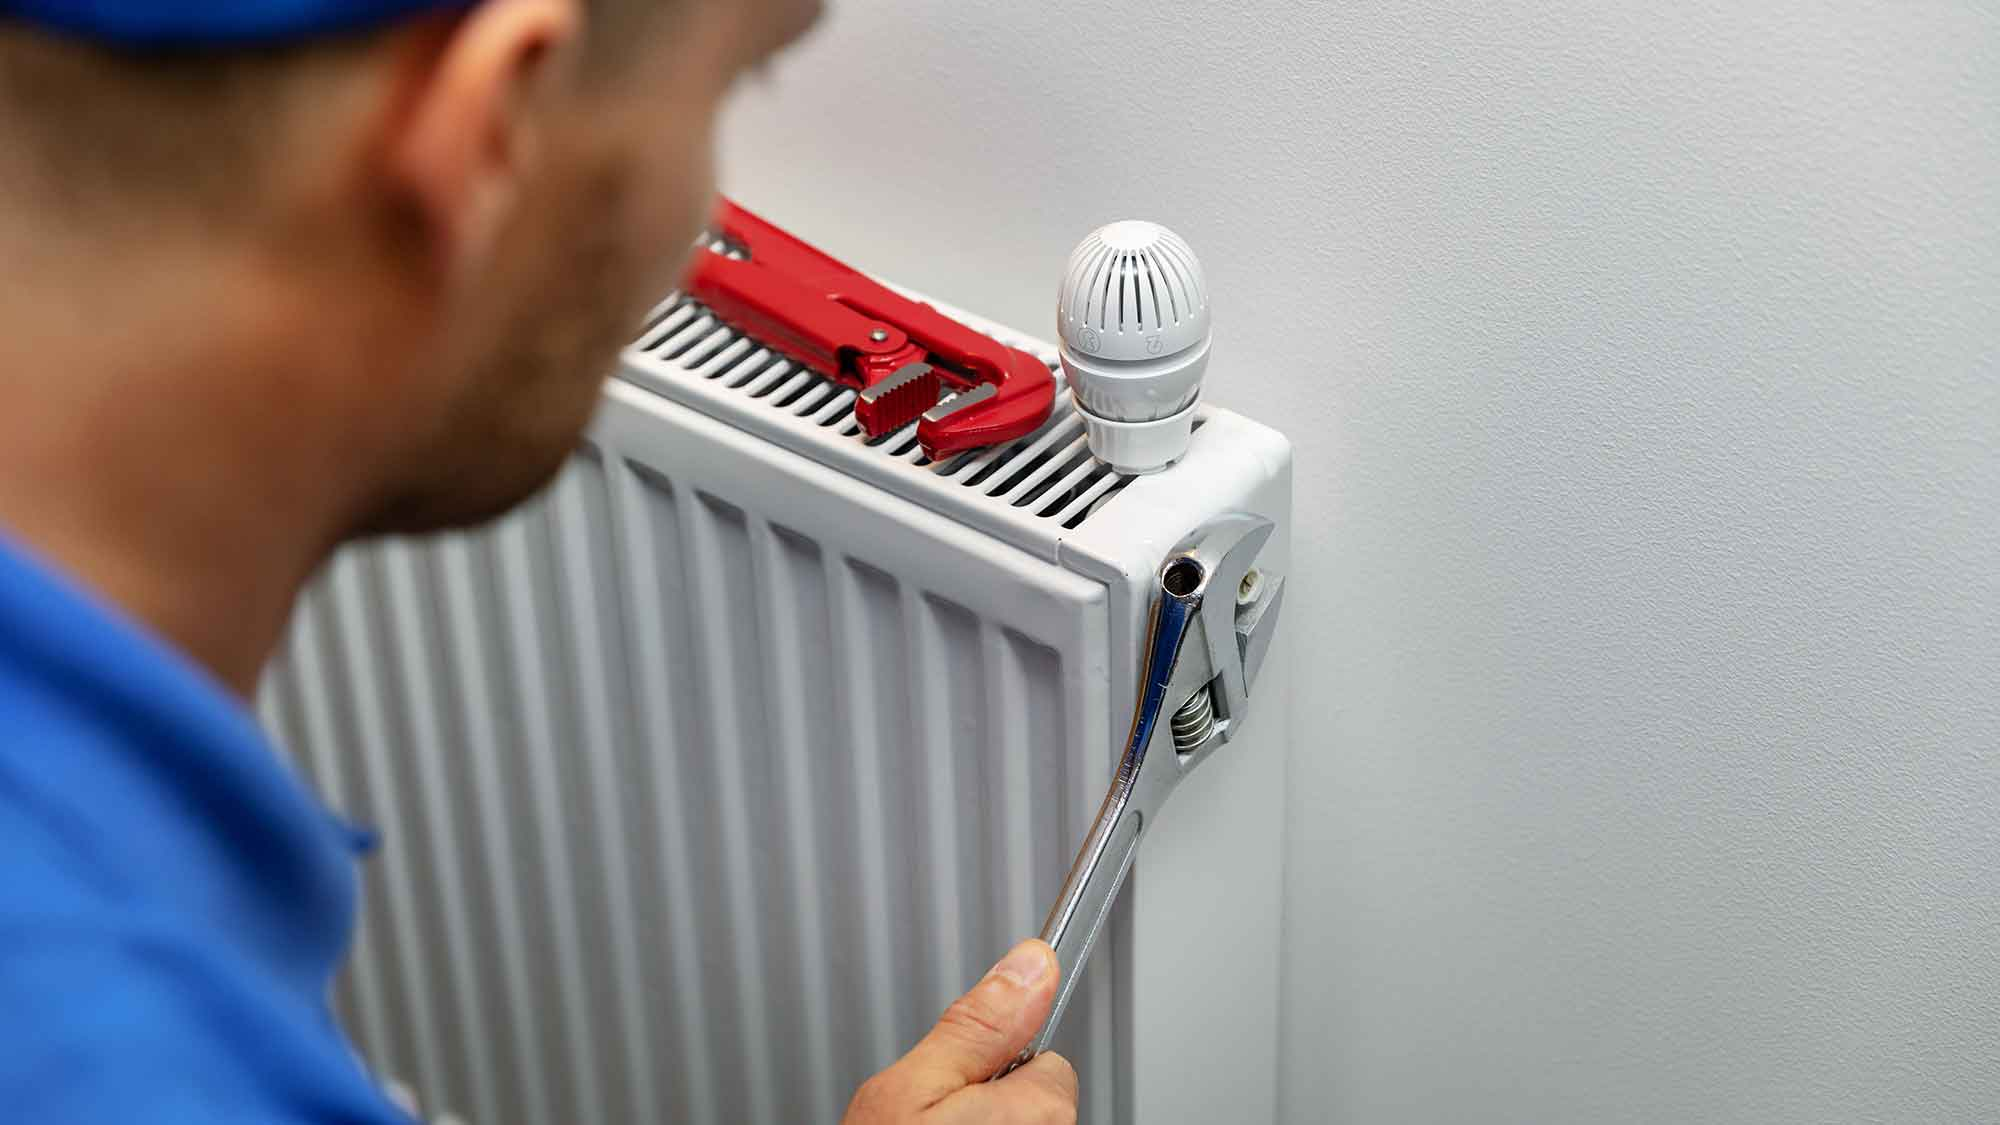 radiator service essex maintenance leigh on sea engineer